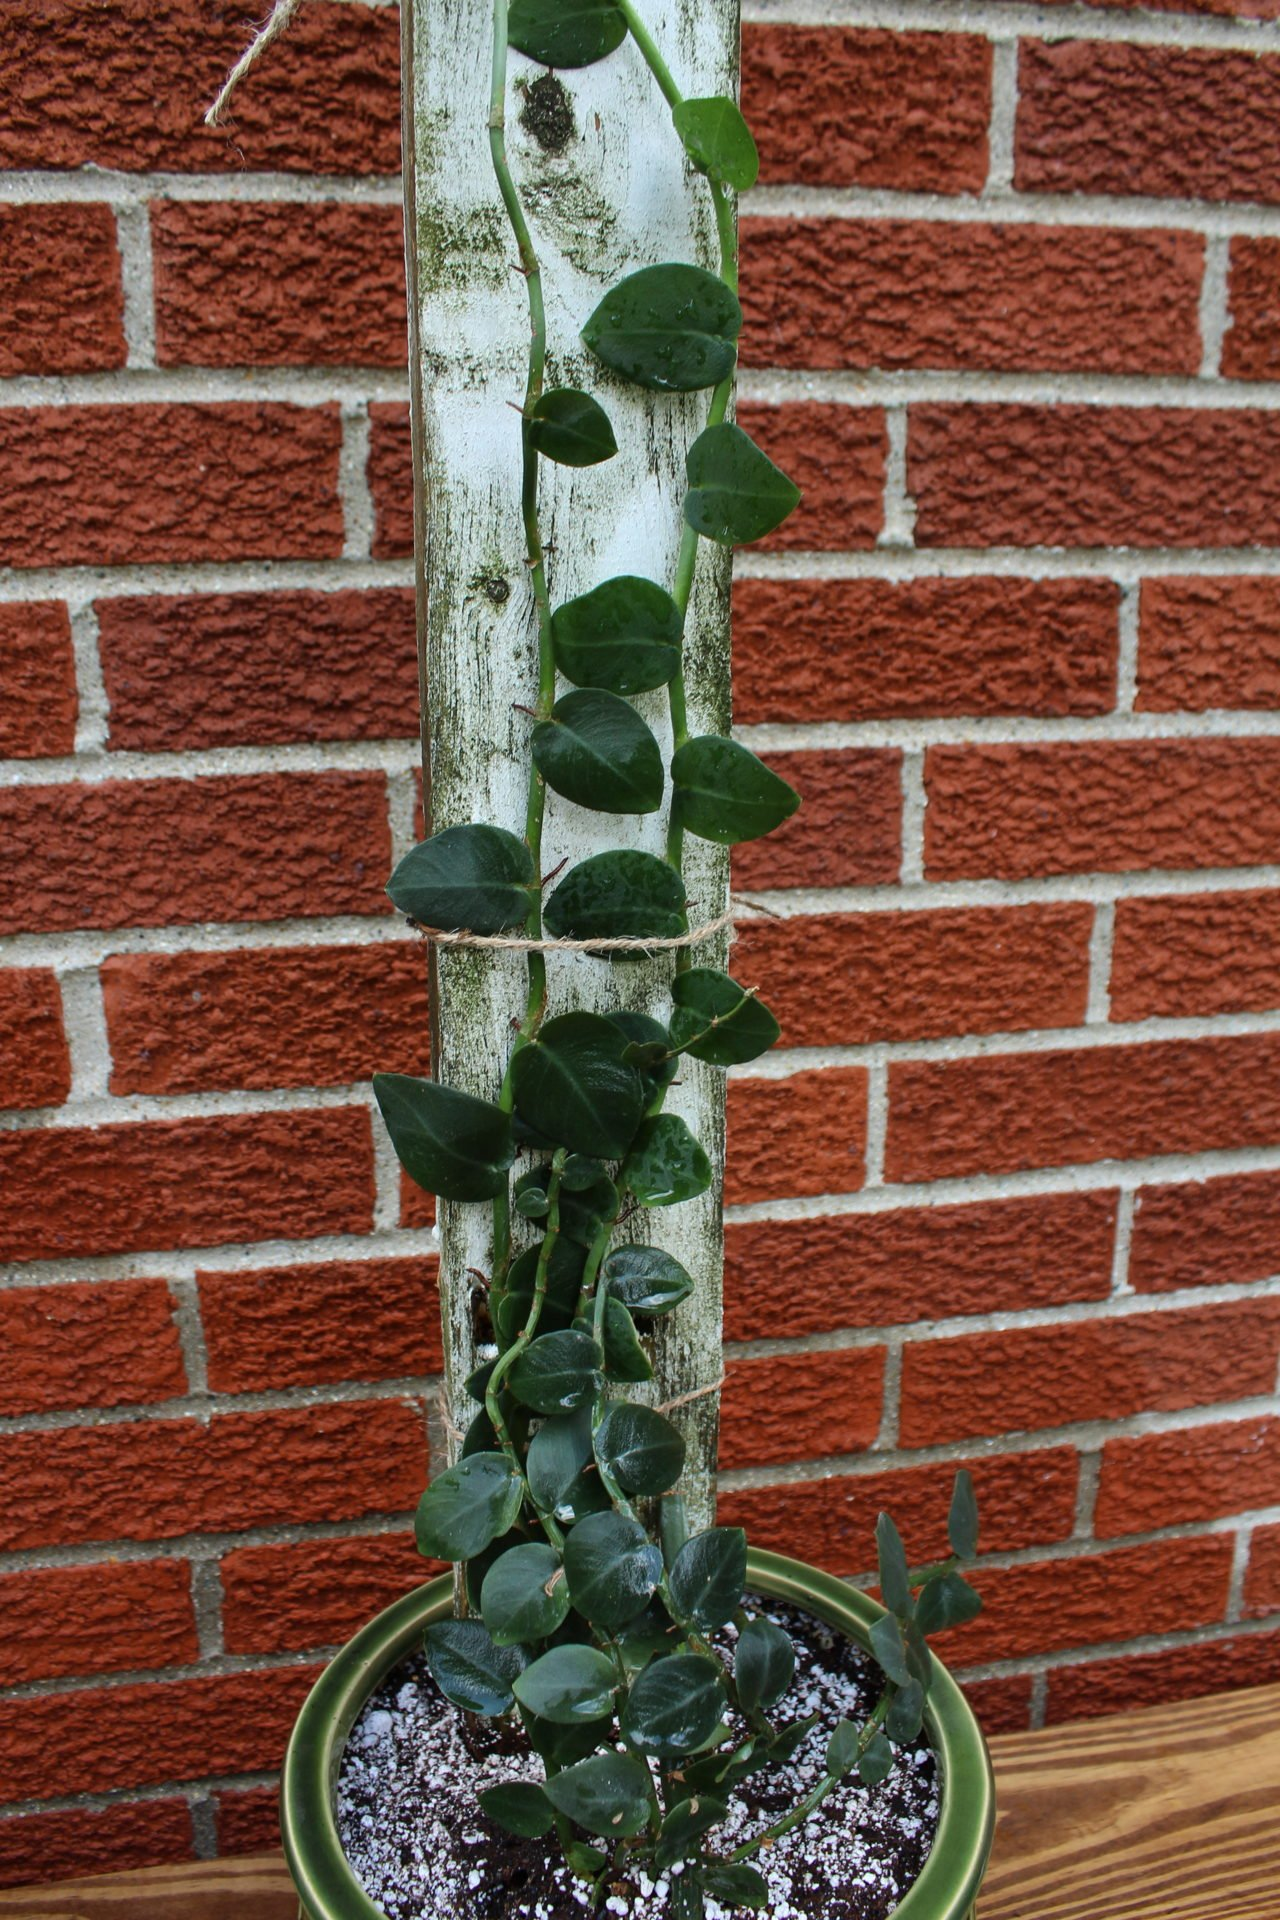 shingle plant on a picket fence post